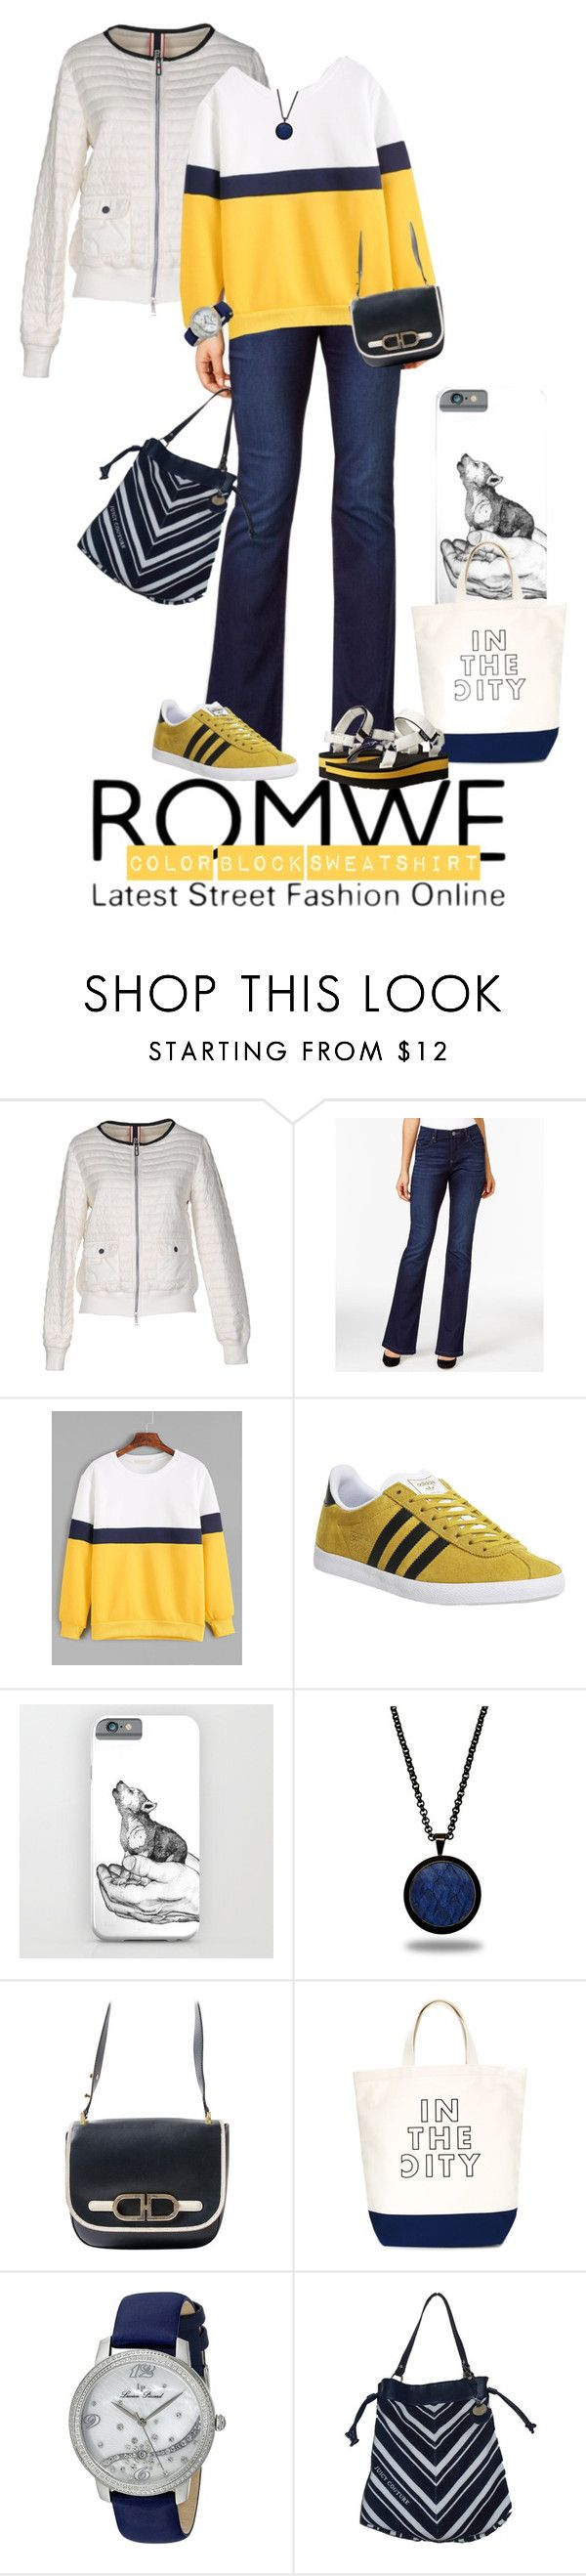 """""""Color Block Sweatshirt"""" by fsg-designs ❤ liked on Polyvore featuring Club Des Sports, Lee, adidas, Marlin Birna, Delvaux, CITYSHOP, Lucien Piccard, Juicy Couture and Teva"""